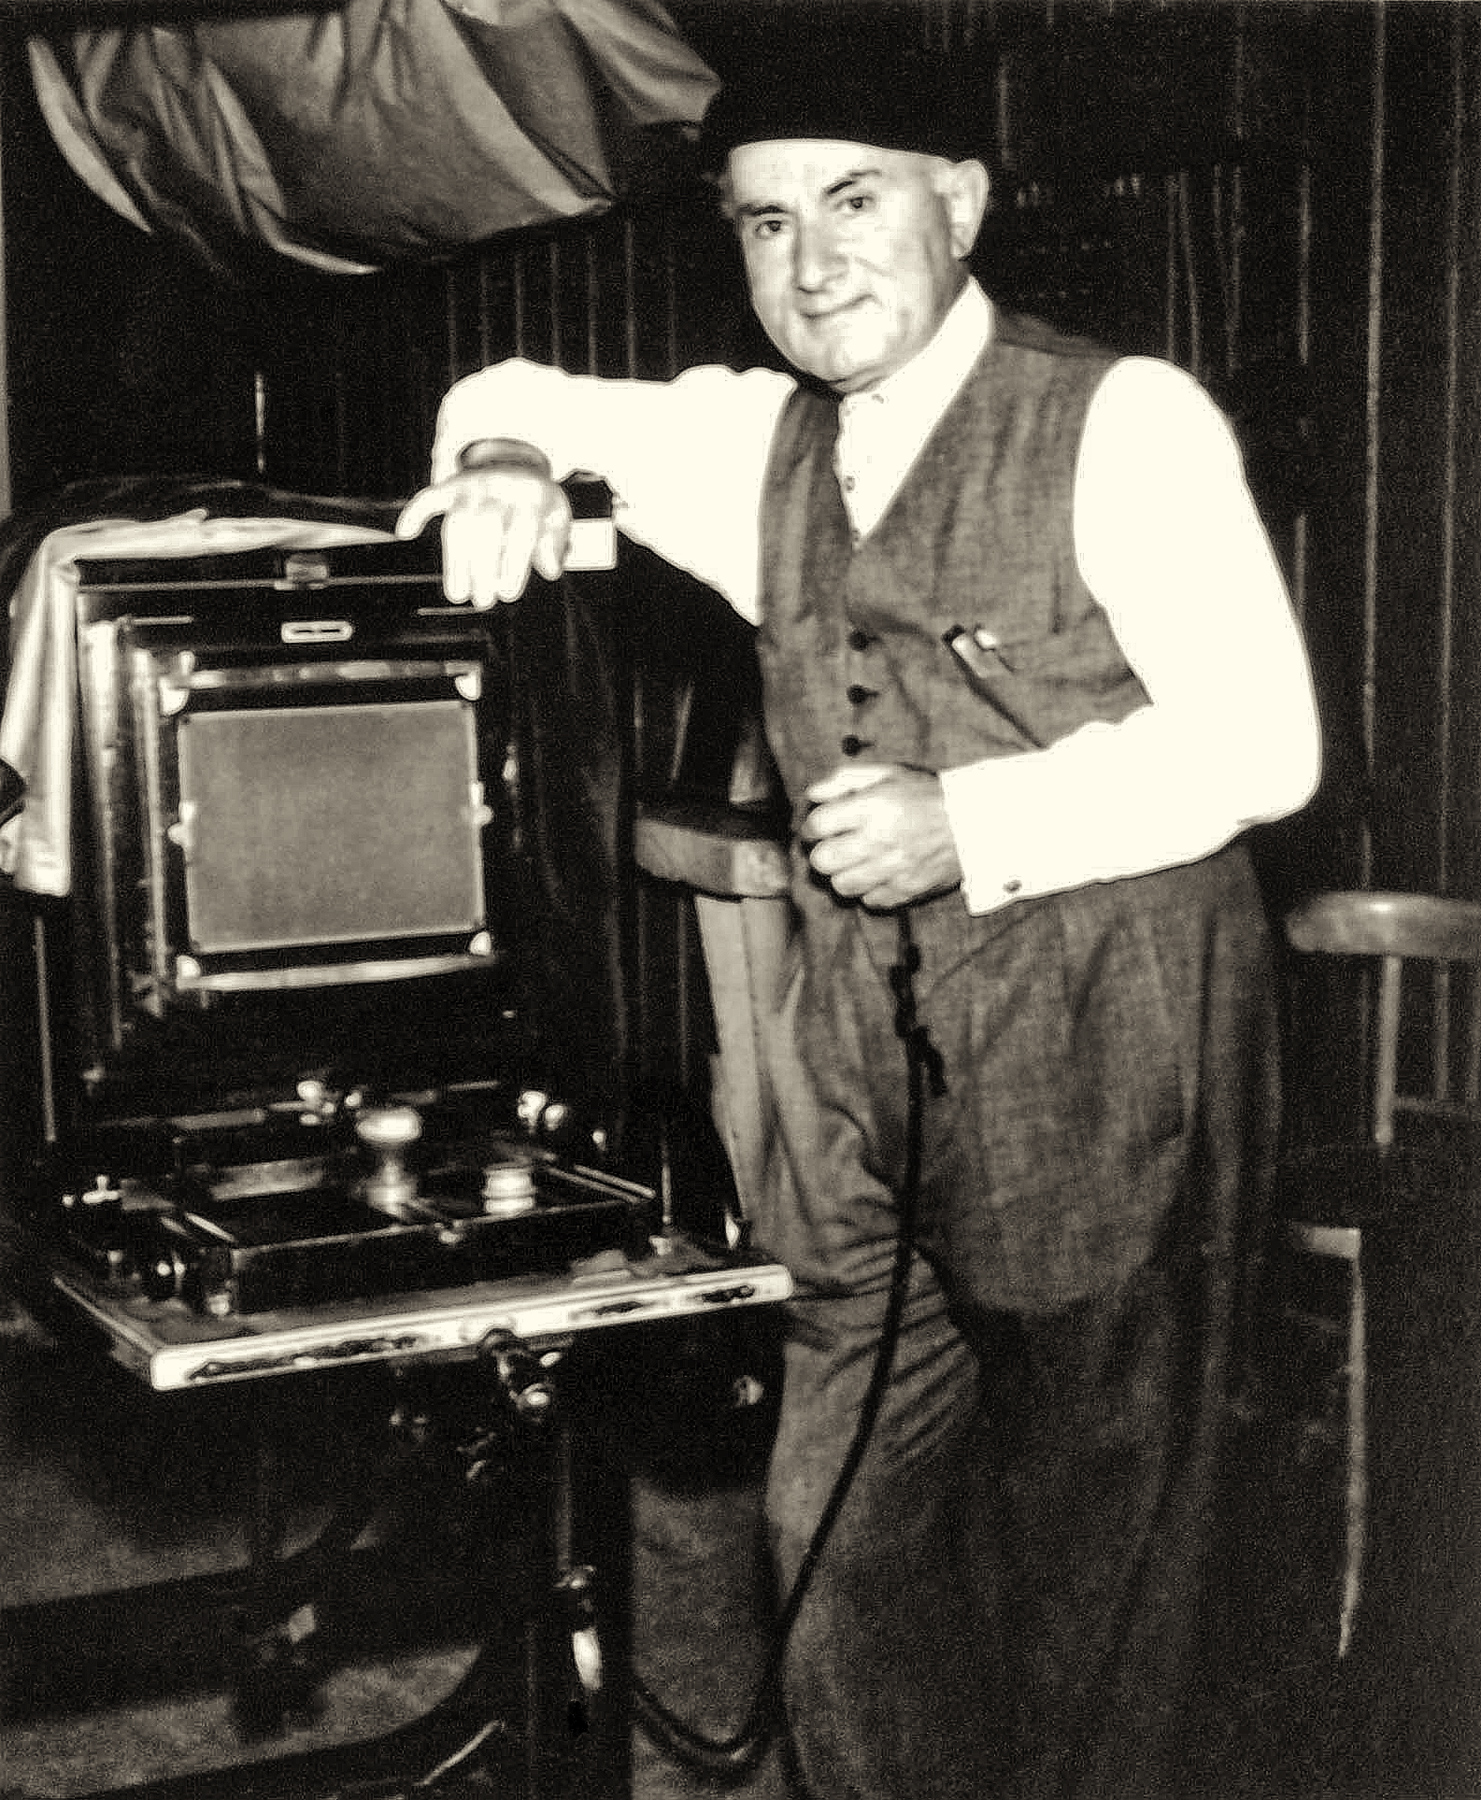 Boris with his studio plate camera - the Kodak 'Big Bertha'